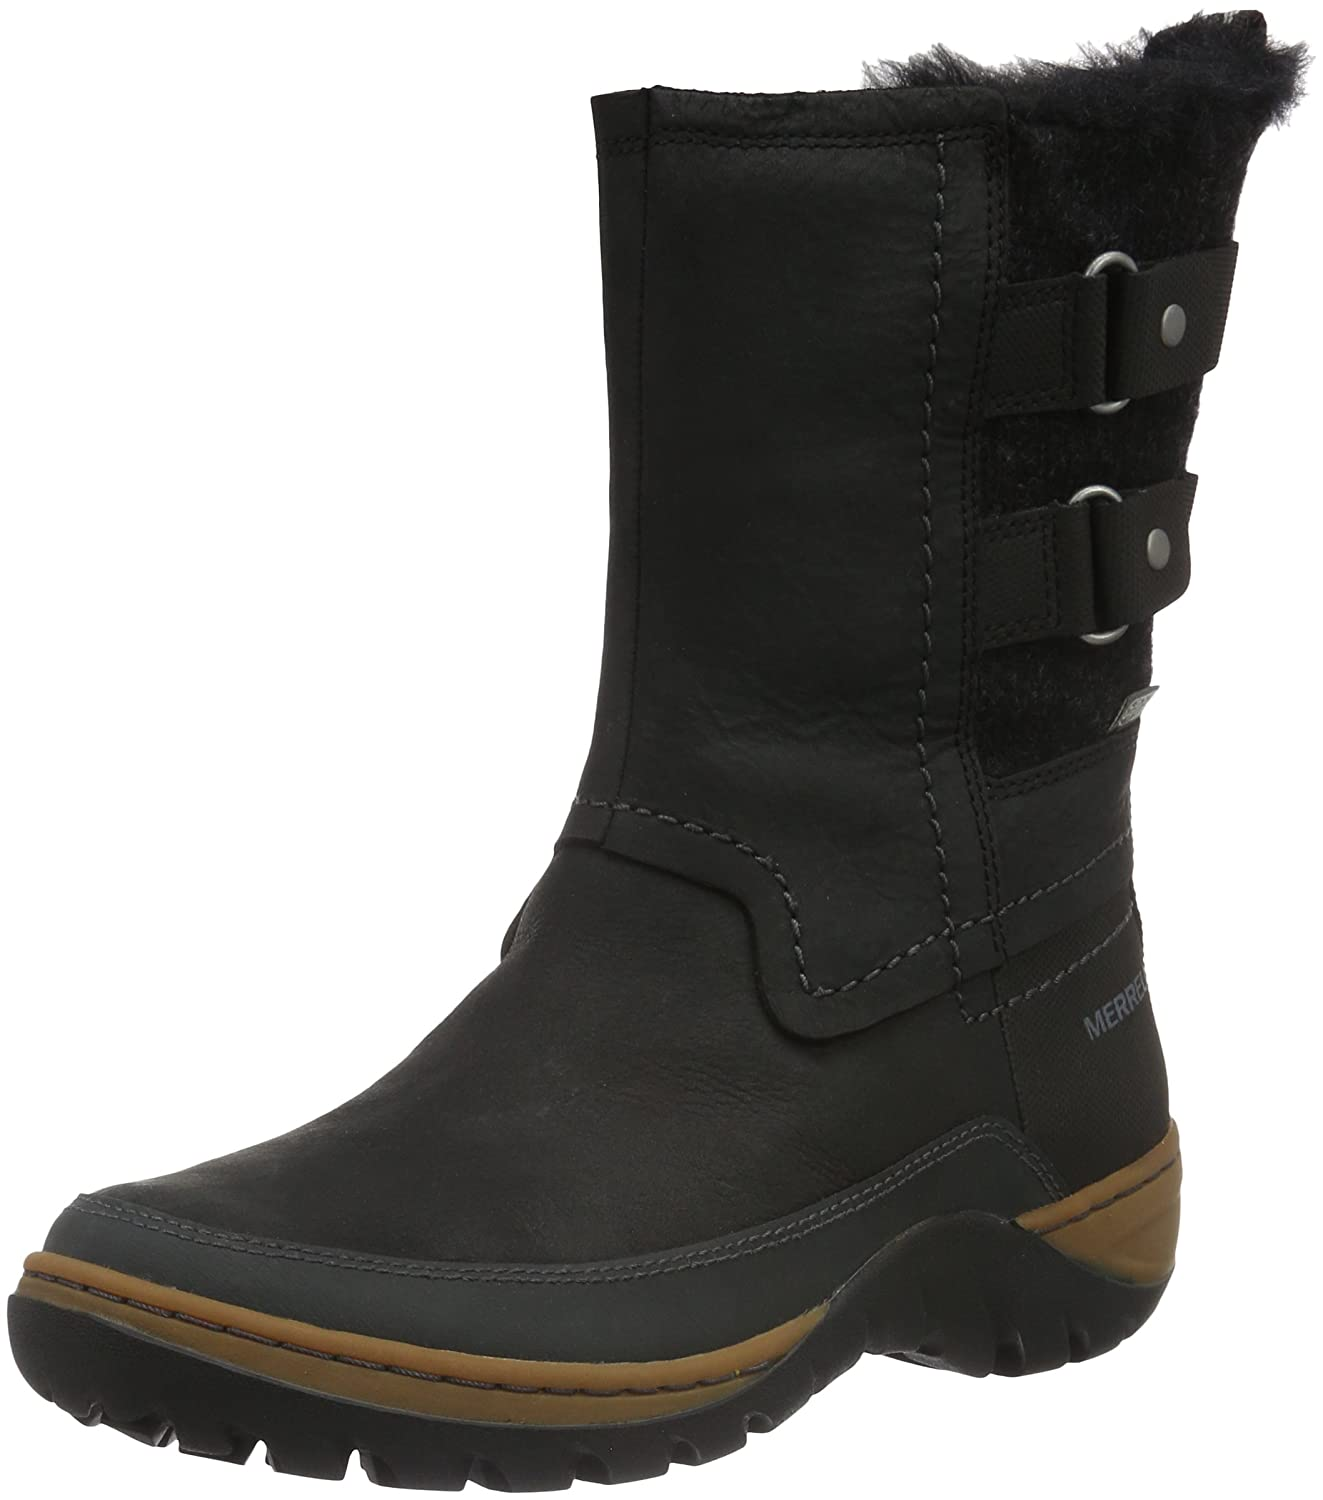 Merrell Women's Sylva Mid Buckle Waterproof-W Snow Boot B01958SEWI 6.5 B(M) US|Black